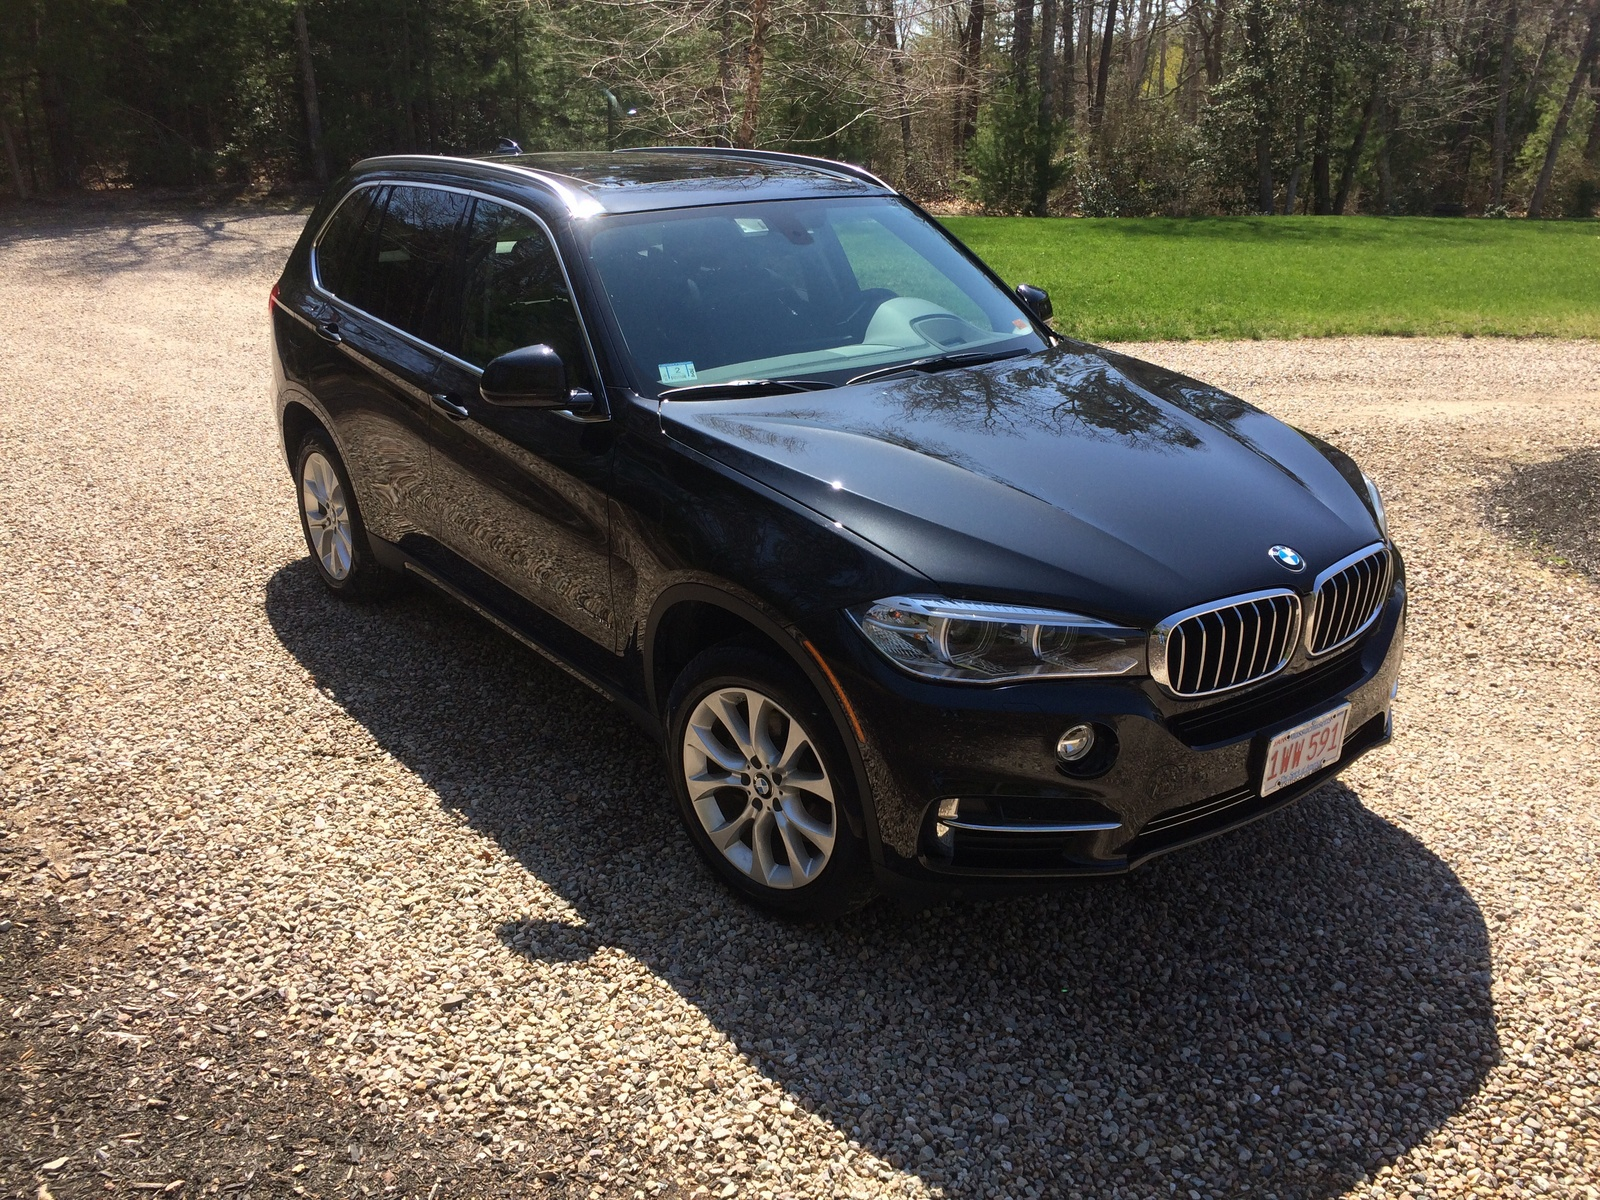 2016 bmw x3 for sale cargurus sexy girl and car photos. Black Bedroom Furniture Sets. Home Design Ideas